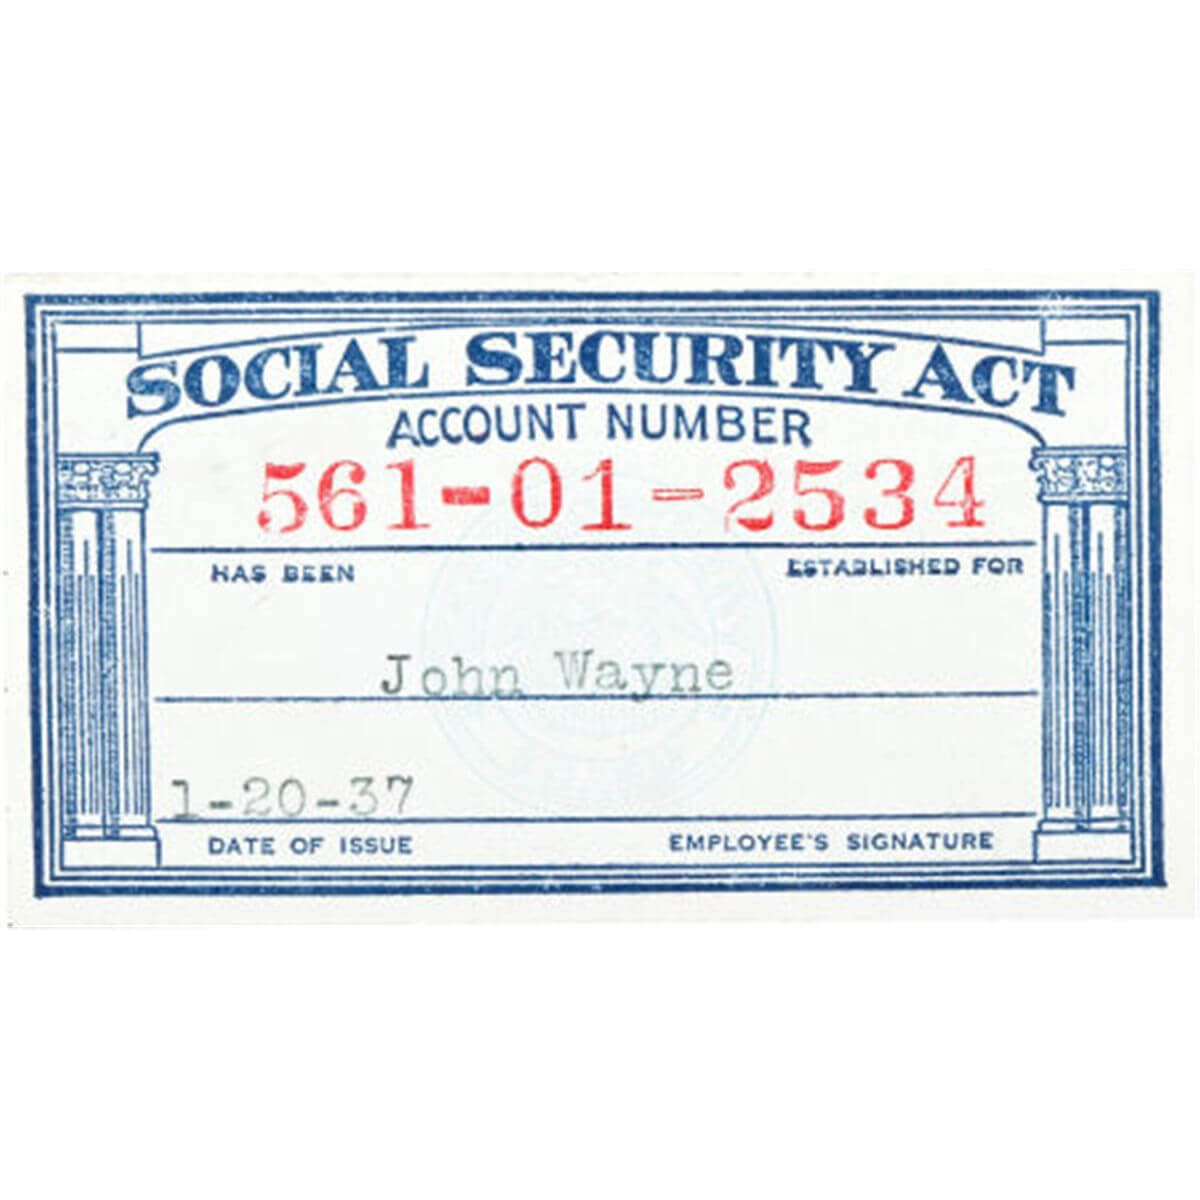 Social Security Card Templates. Social Security Template intended for Social Security Card Template Psd